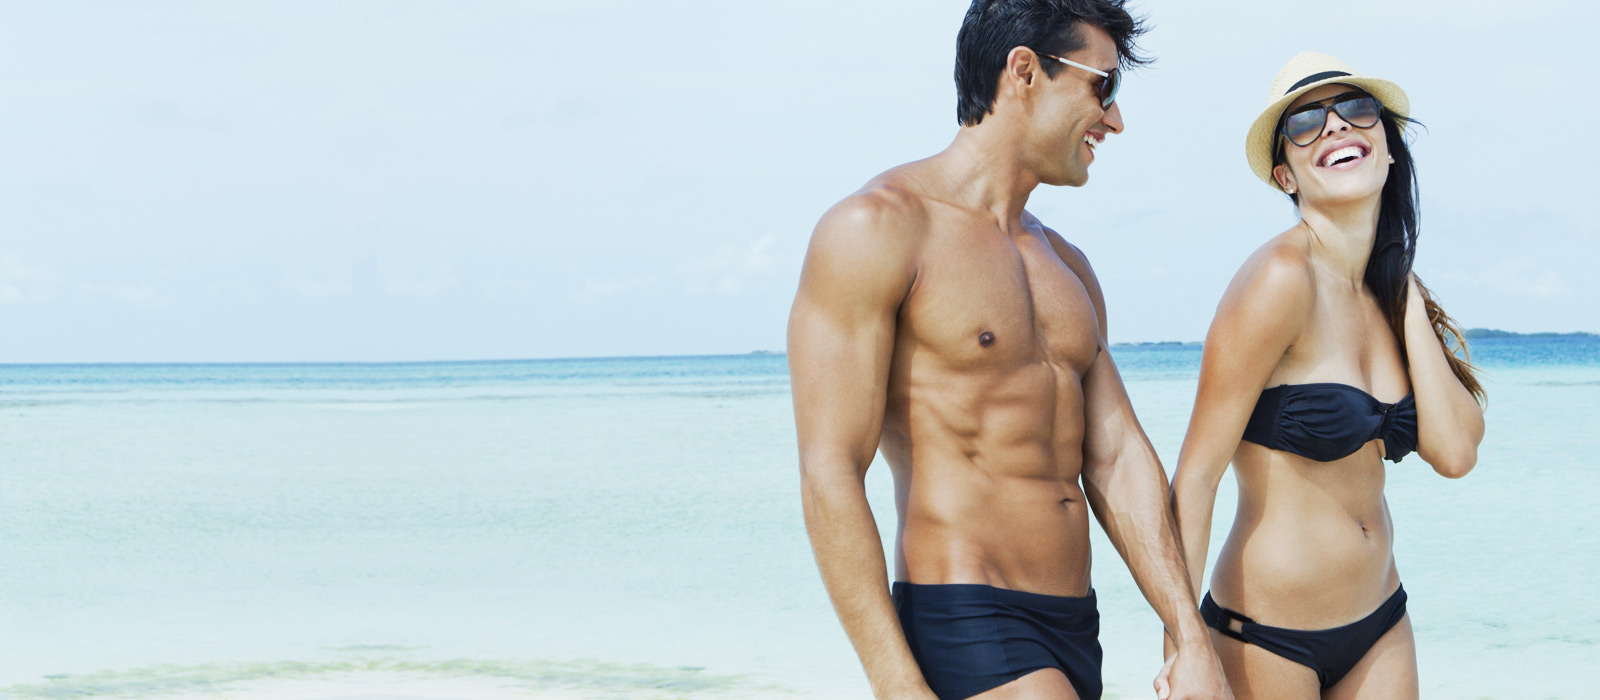 How your smartphone can help you get in shape and shredded for summer